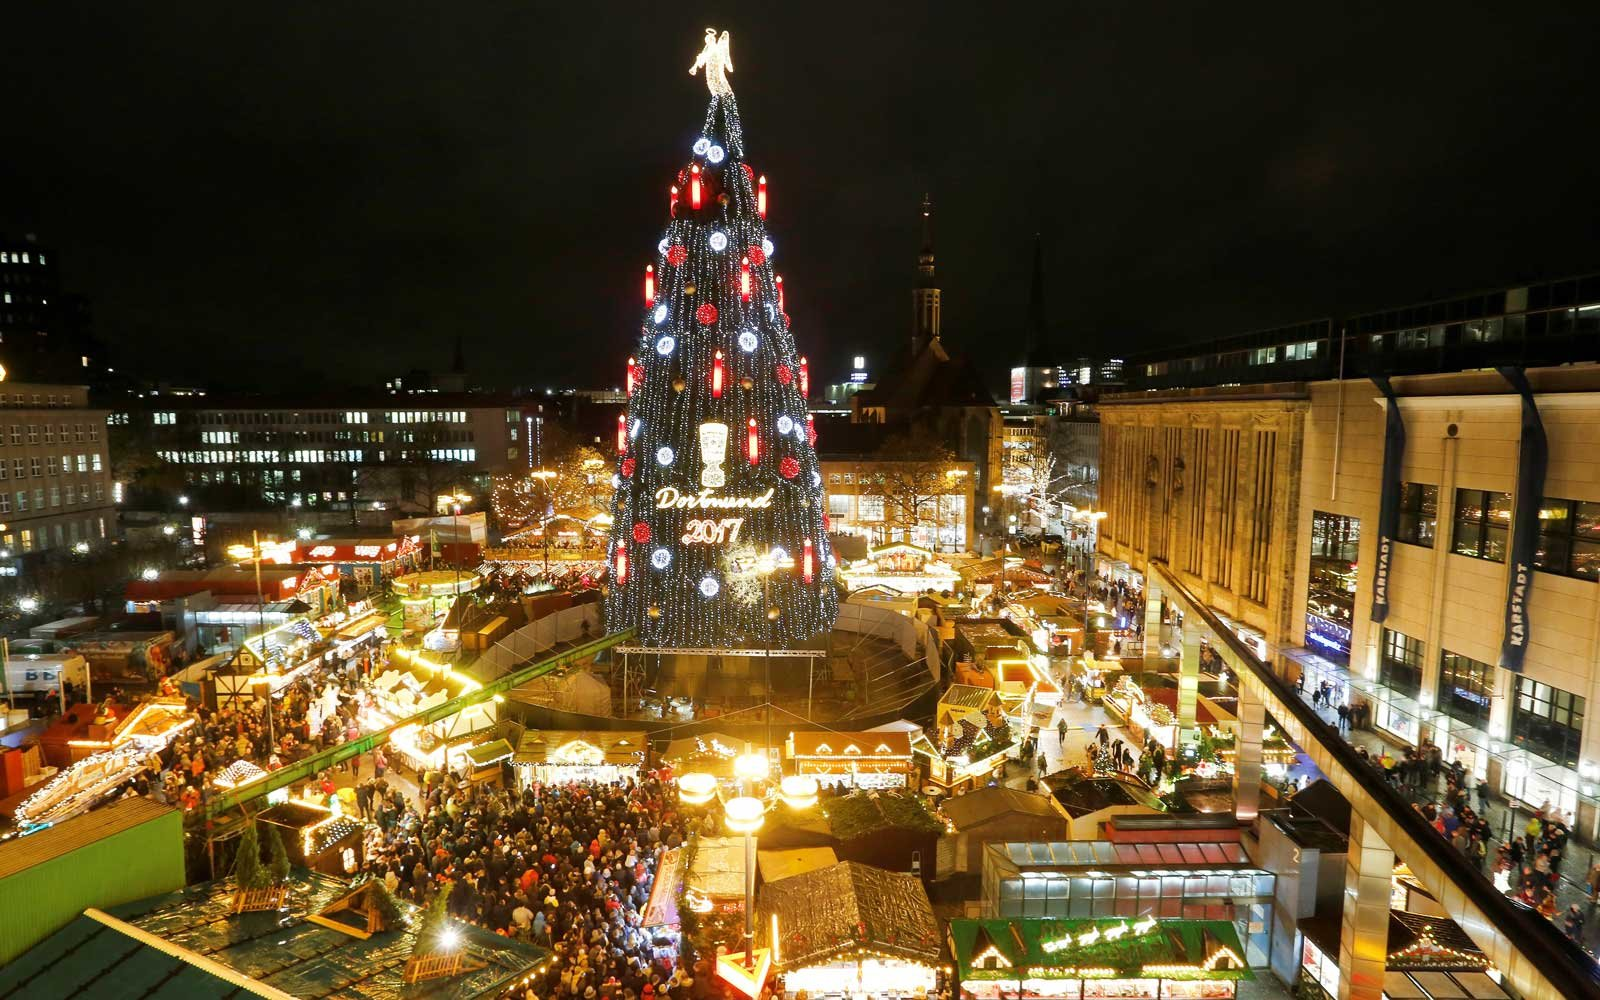 Giant Christmas tree in Dortmund, Germany